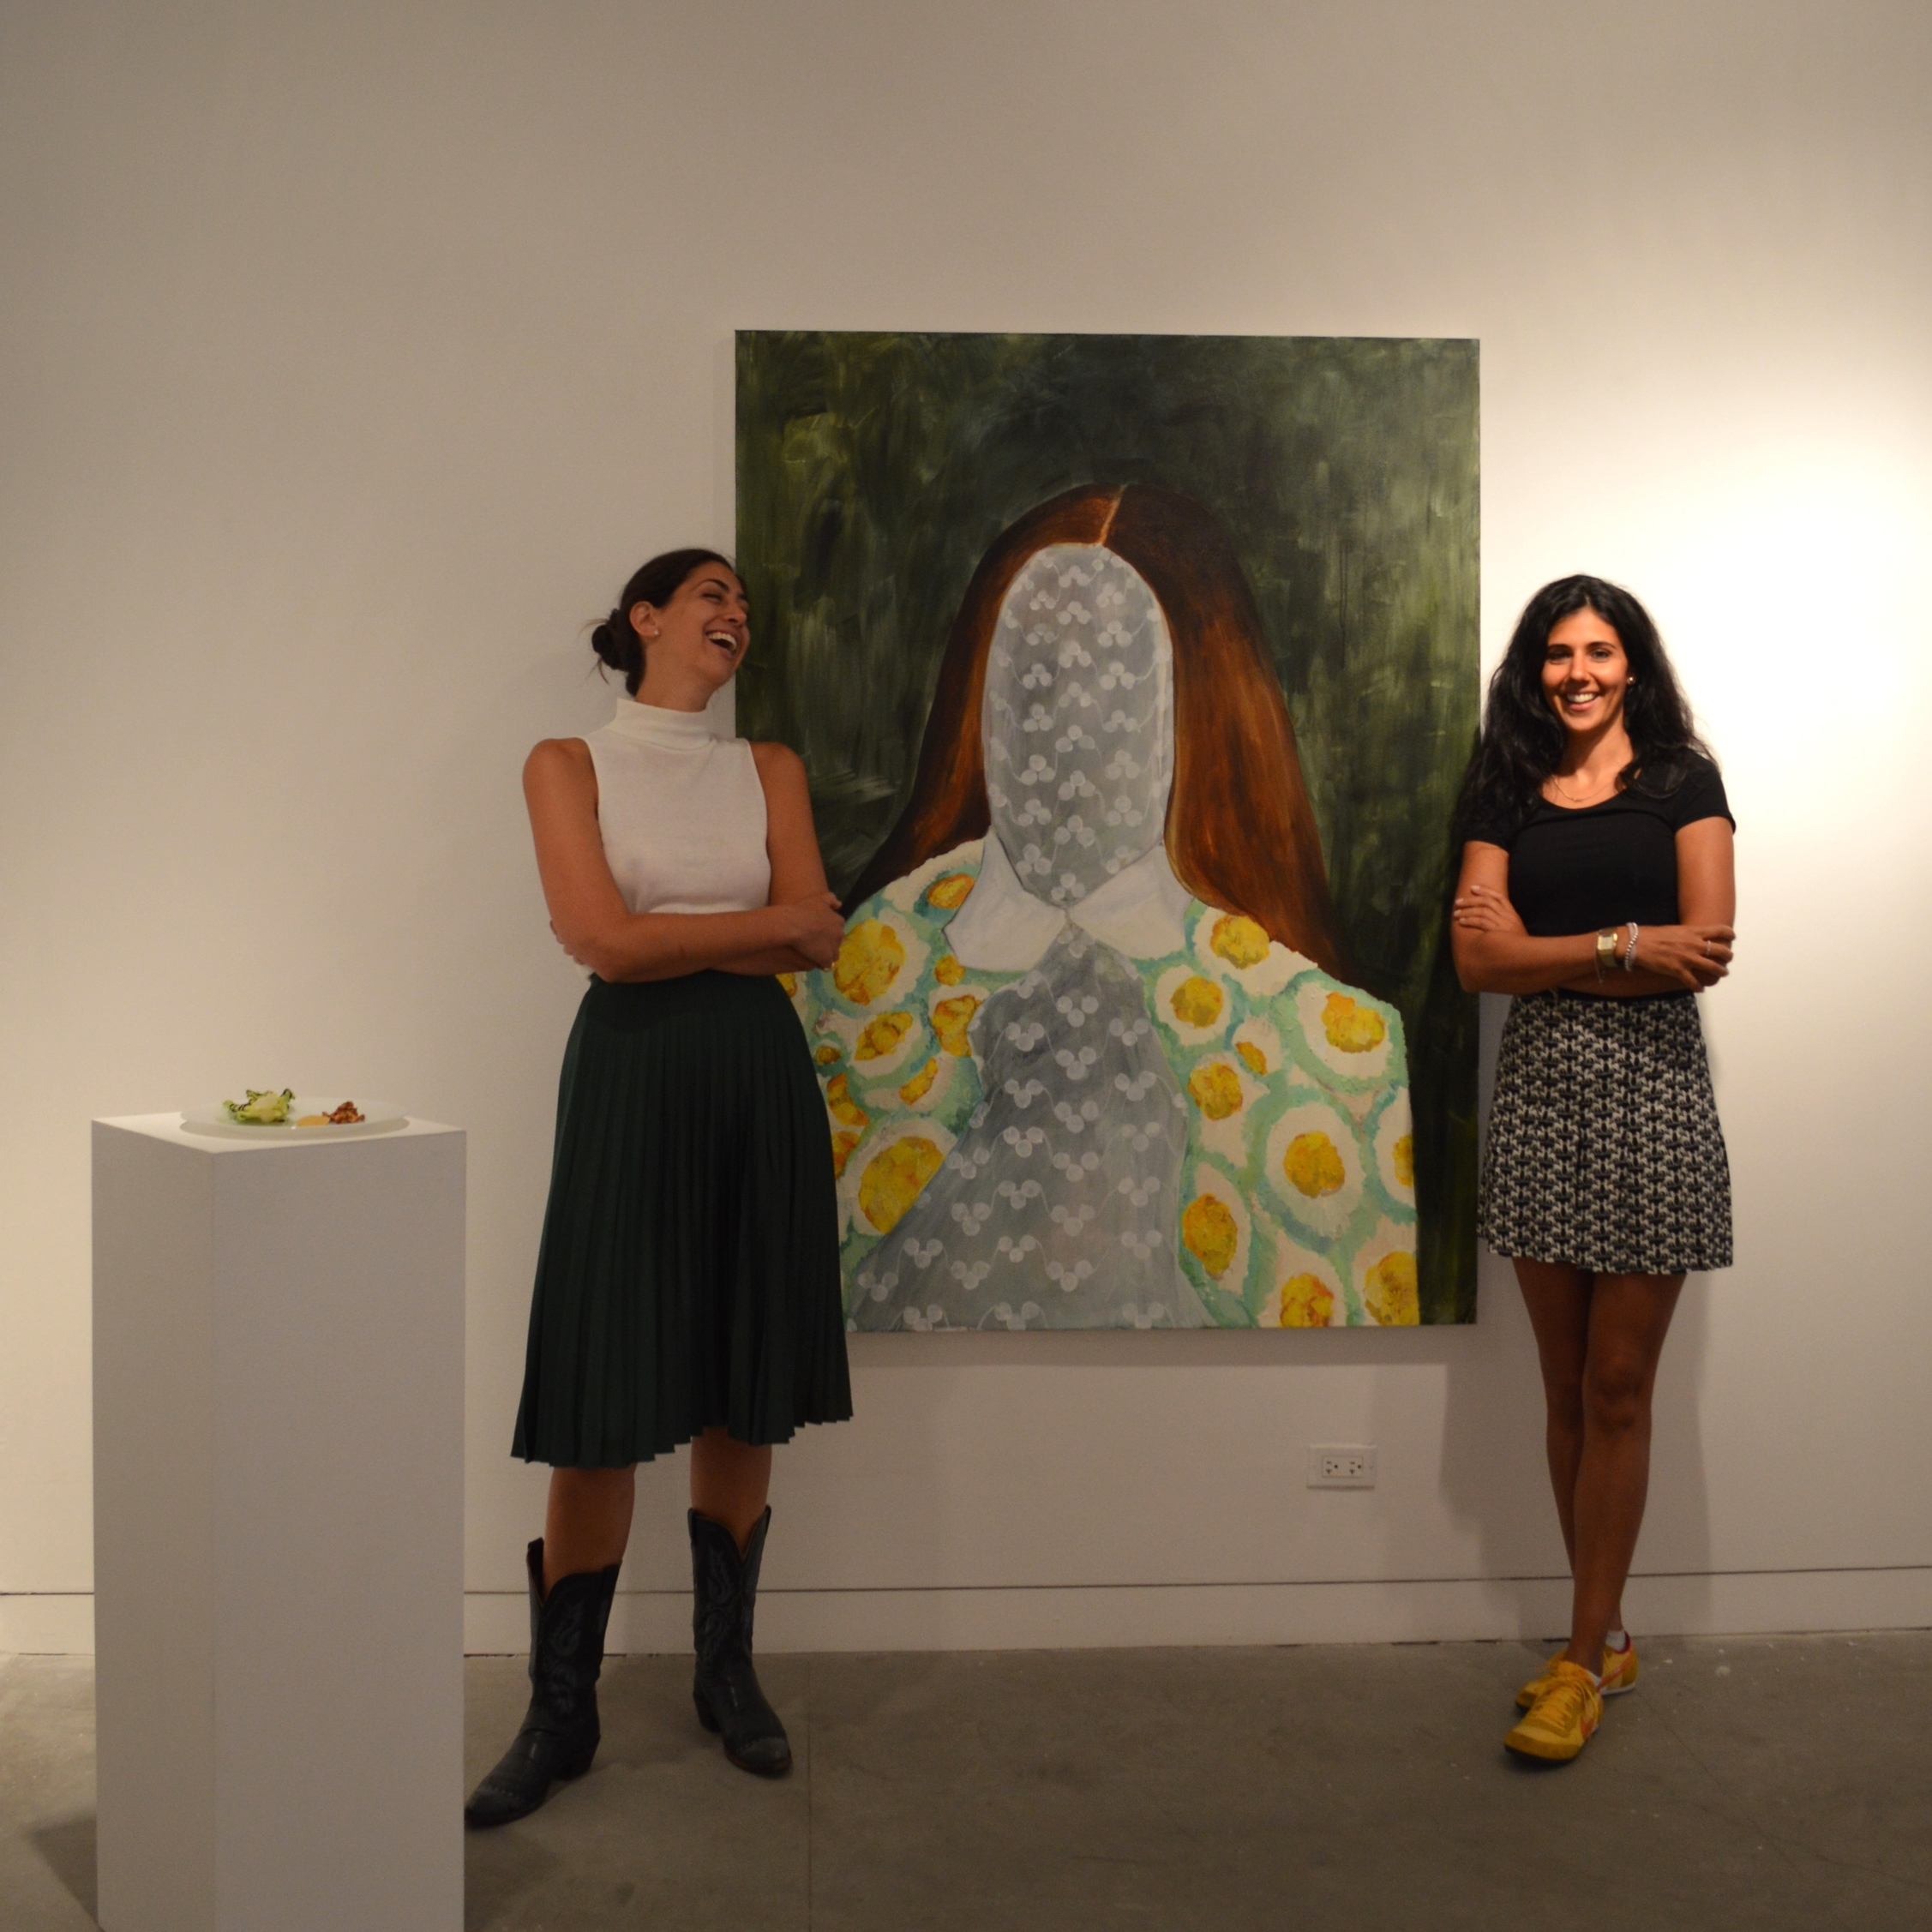 Stephanie Nass and Jennifer Louise Martin standing by their respective artworks